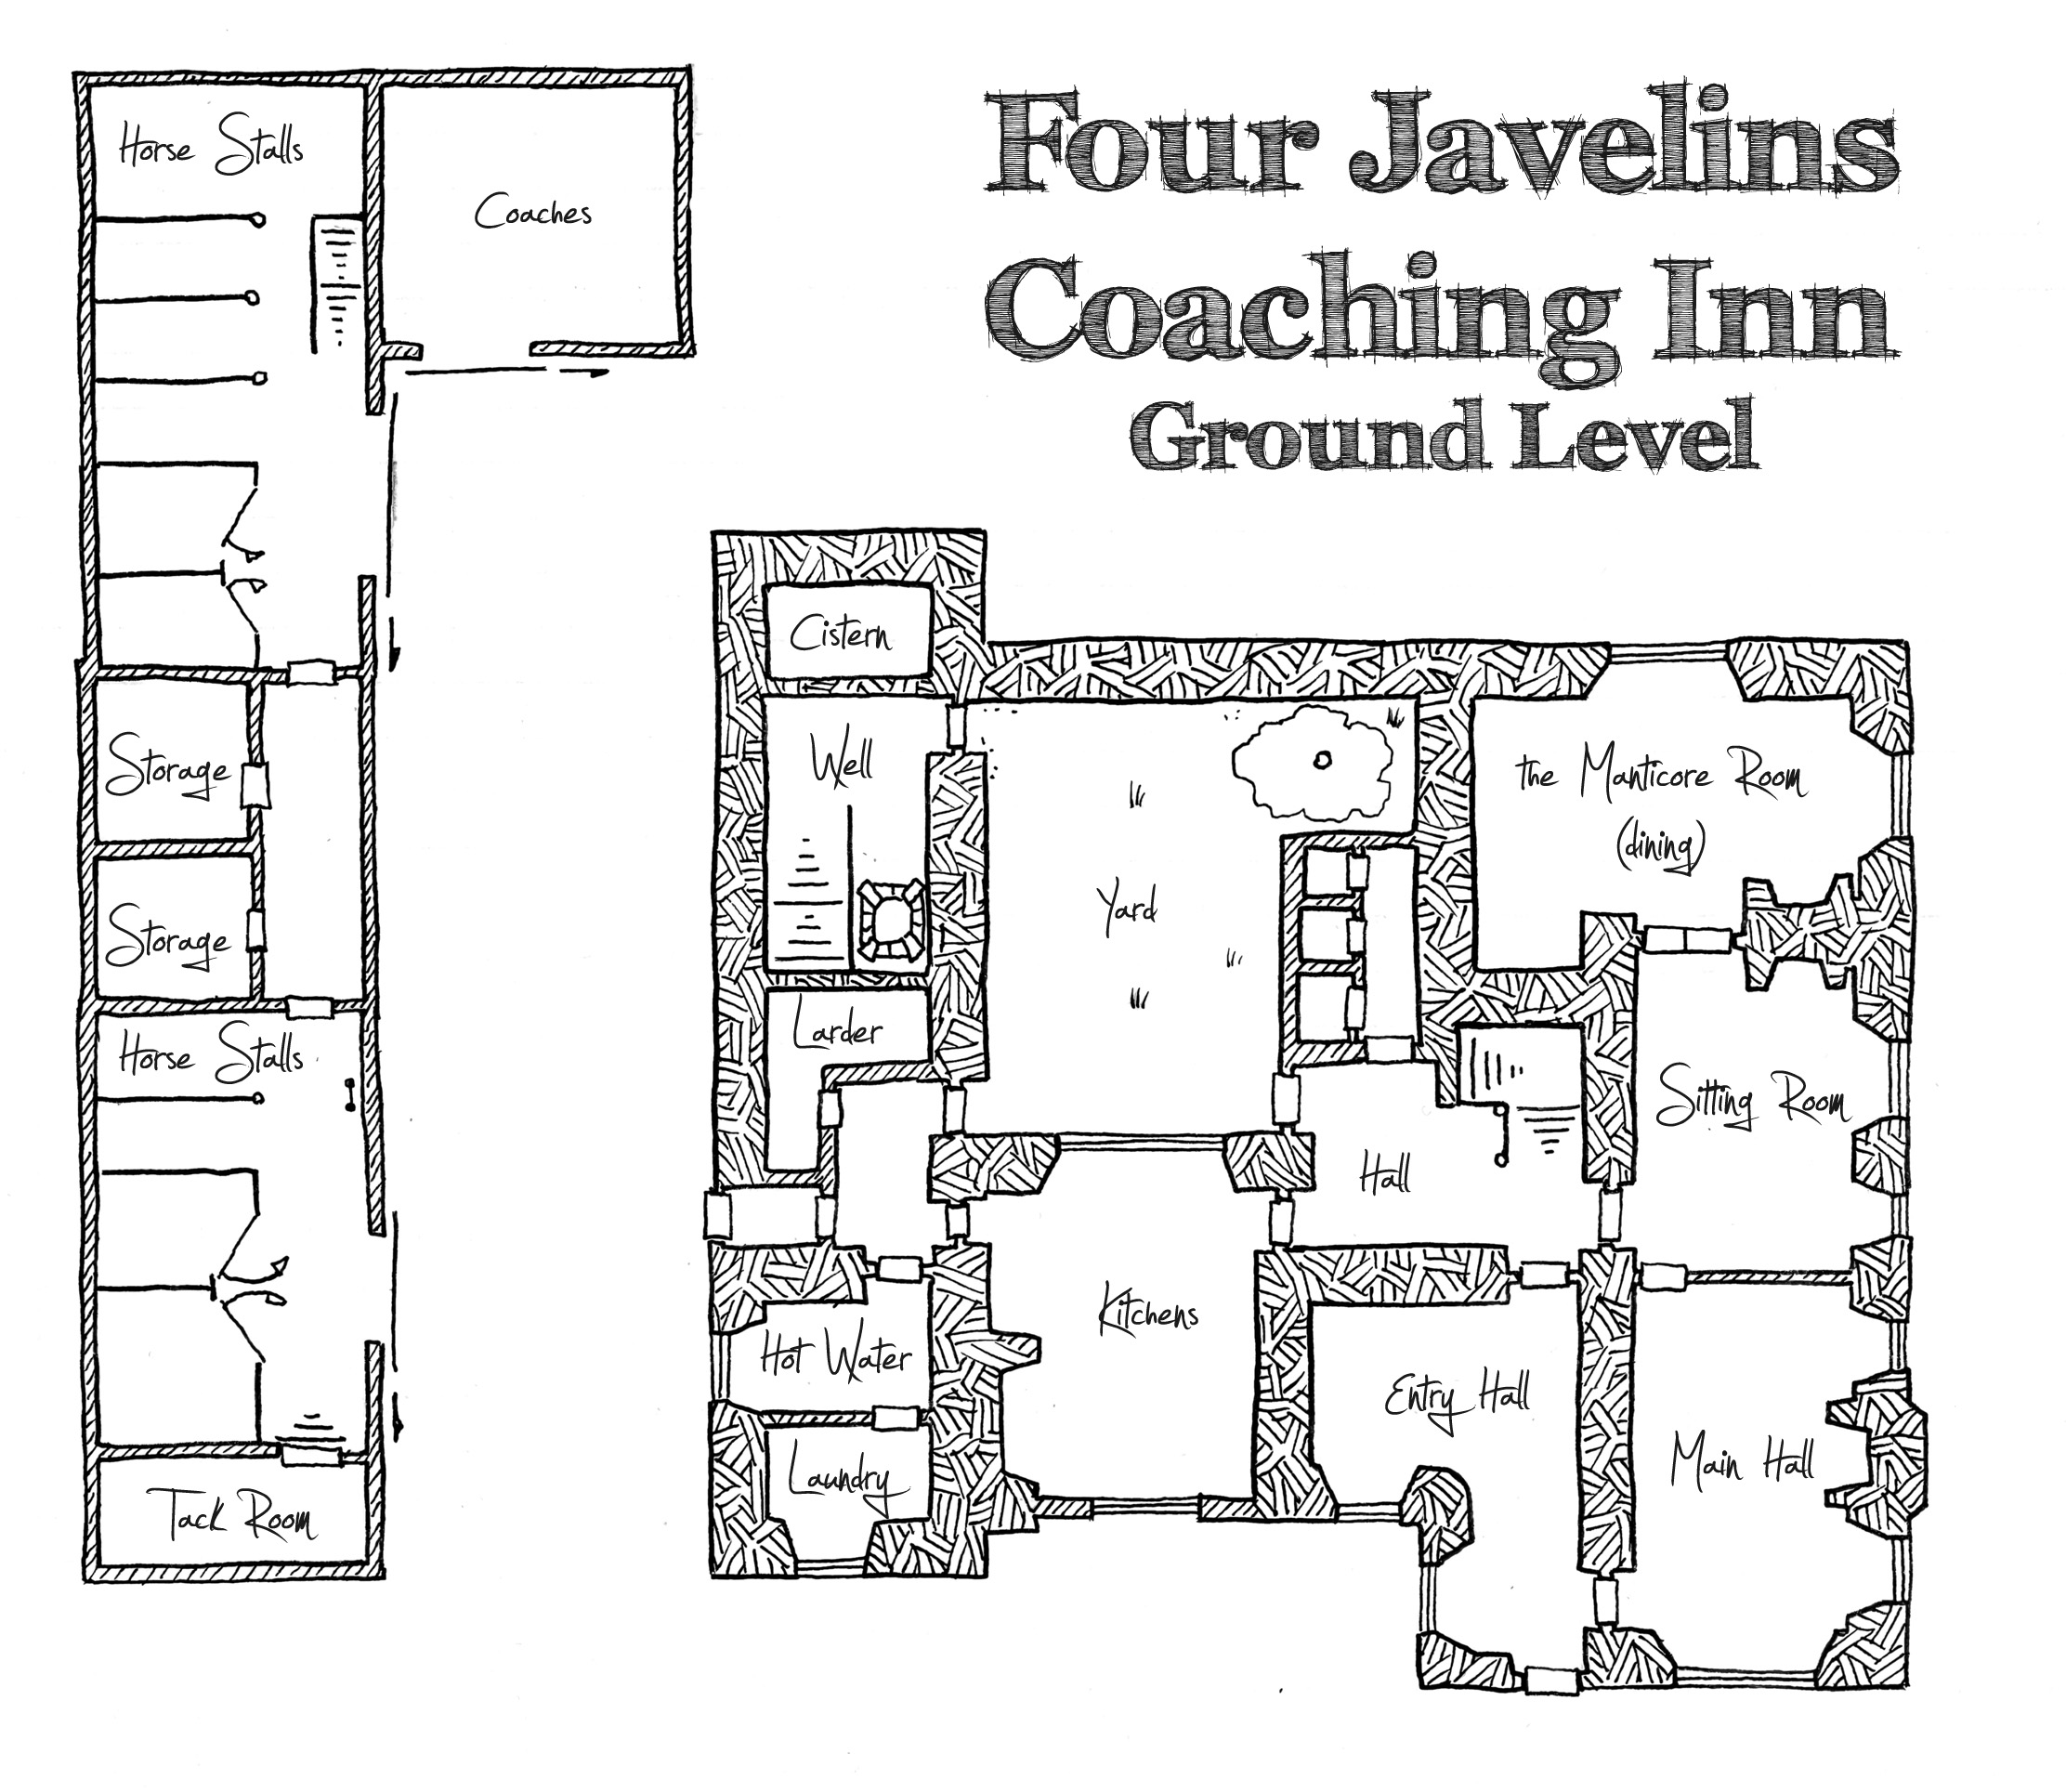 Townhouse Blueprints Friday Map The Four Javelins Coaching Inn Ground Level